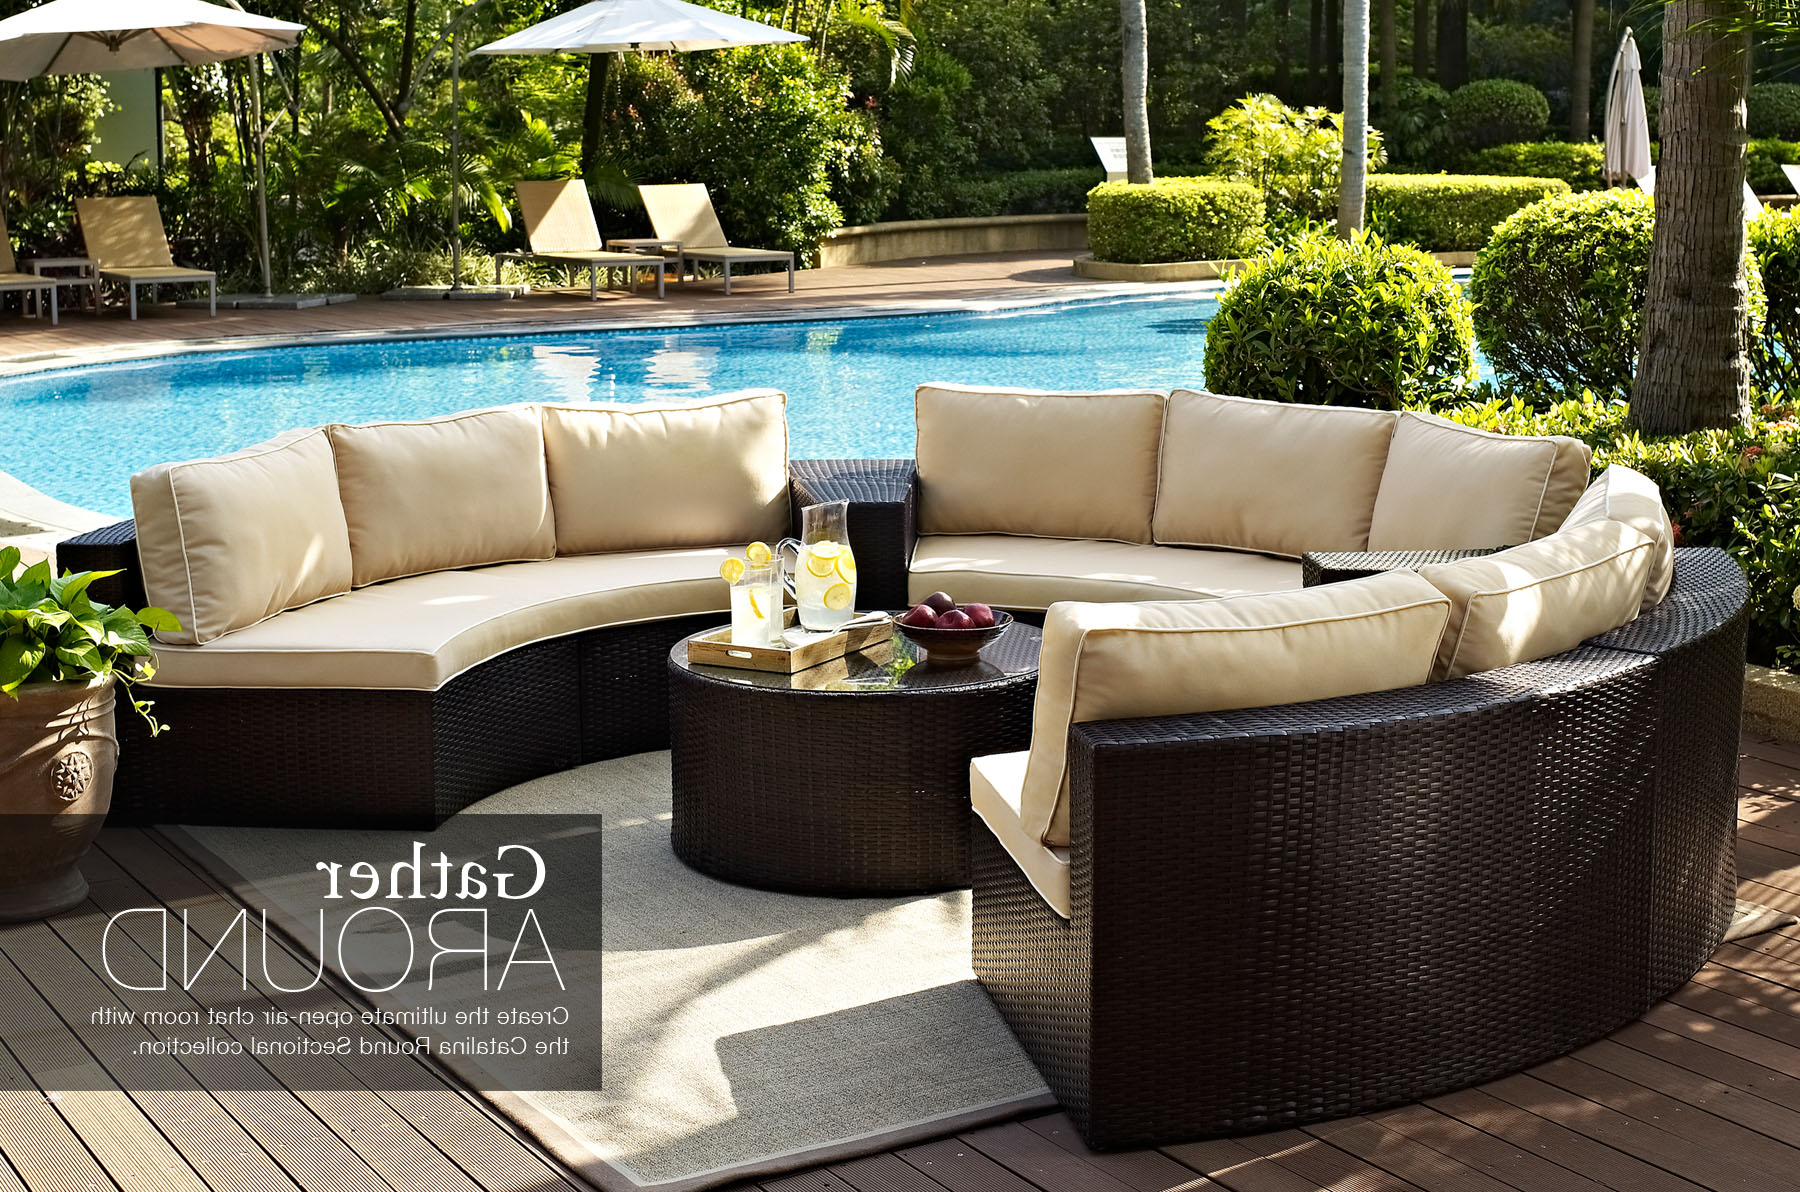 Current Bradenton Outdoor Wicker Chaise Lounges With Cushions For Home Page (View 18 of 25)